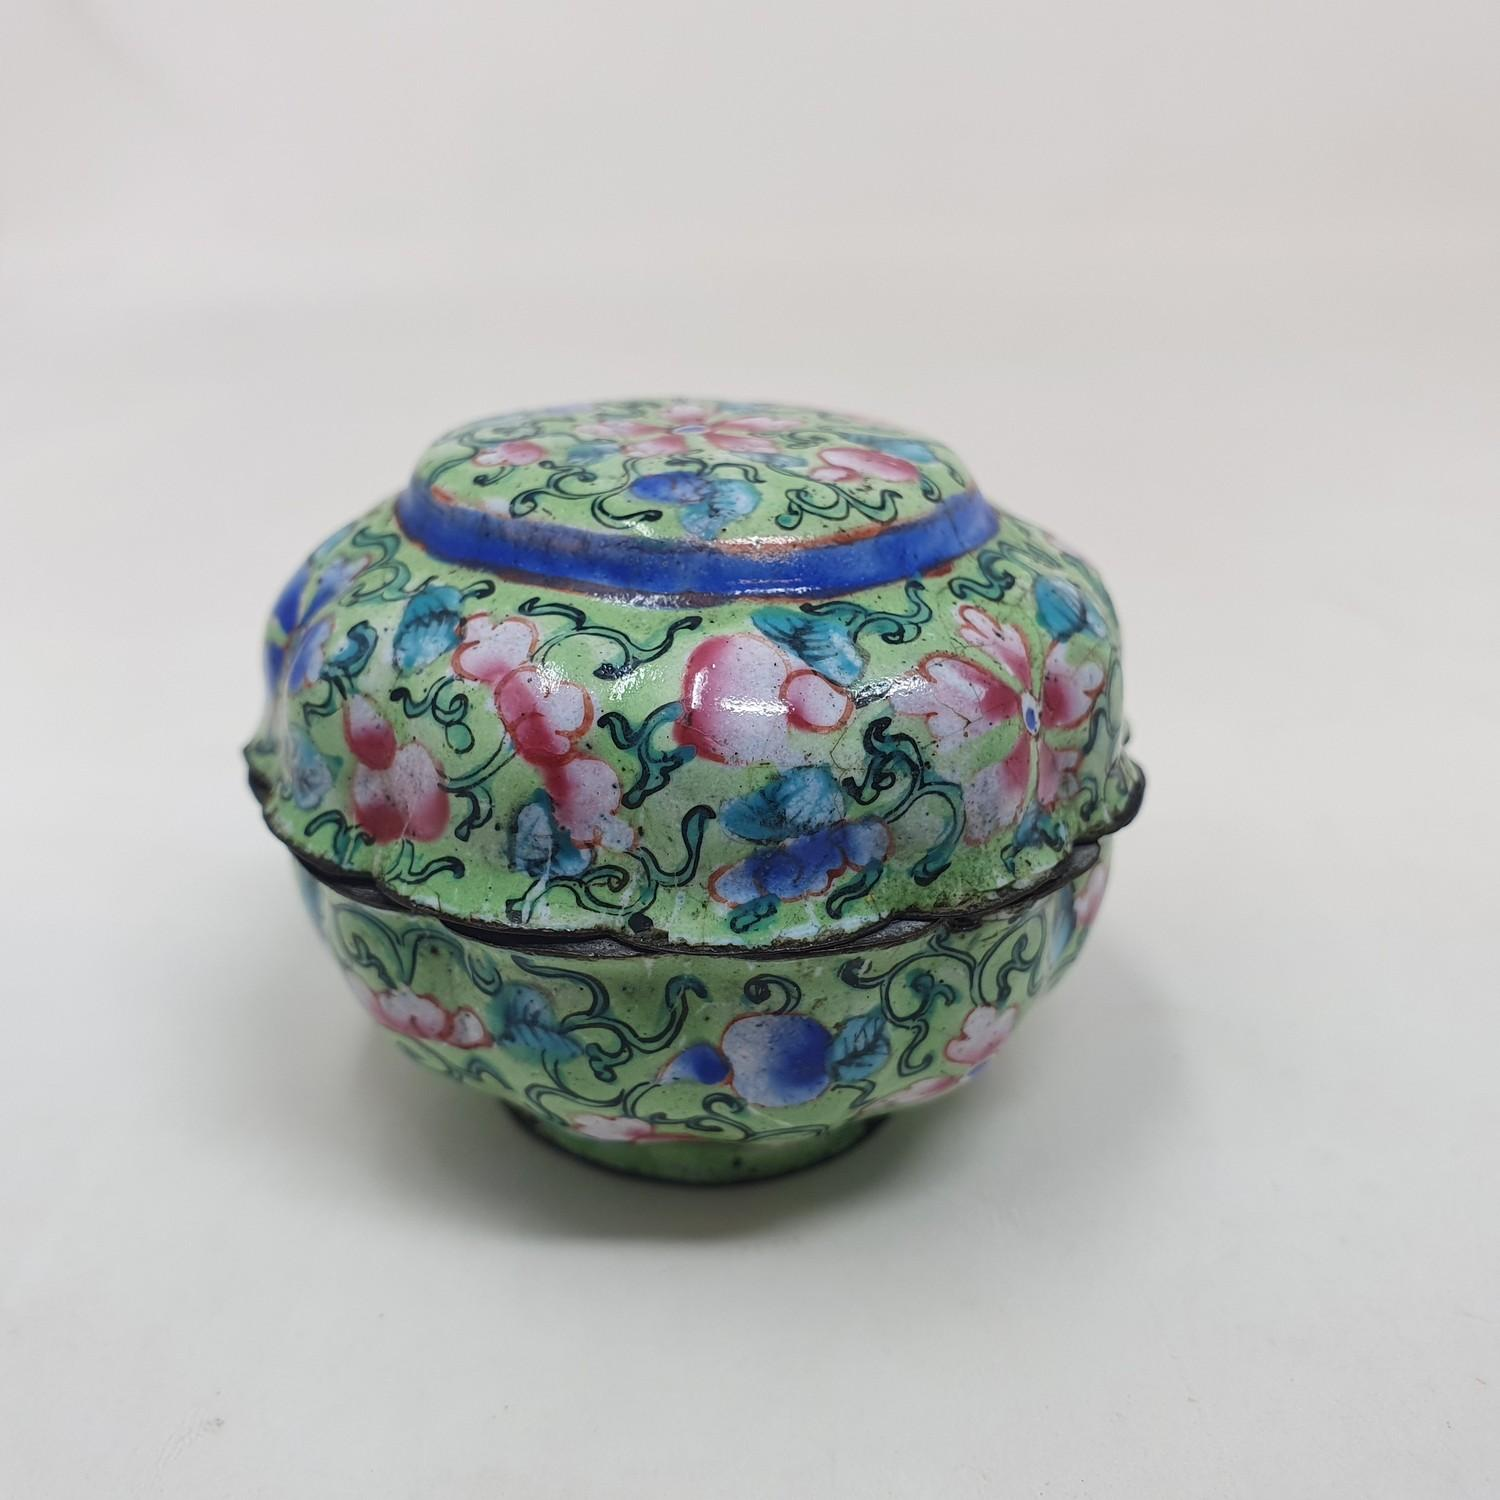 A Canton enamel pot and cover, decorated flowers on a green ground, 3 cm diameter - Image 3 of 5